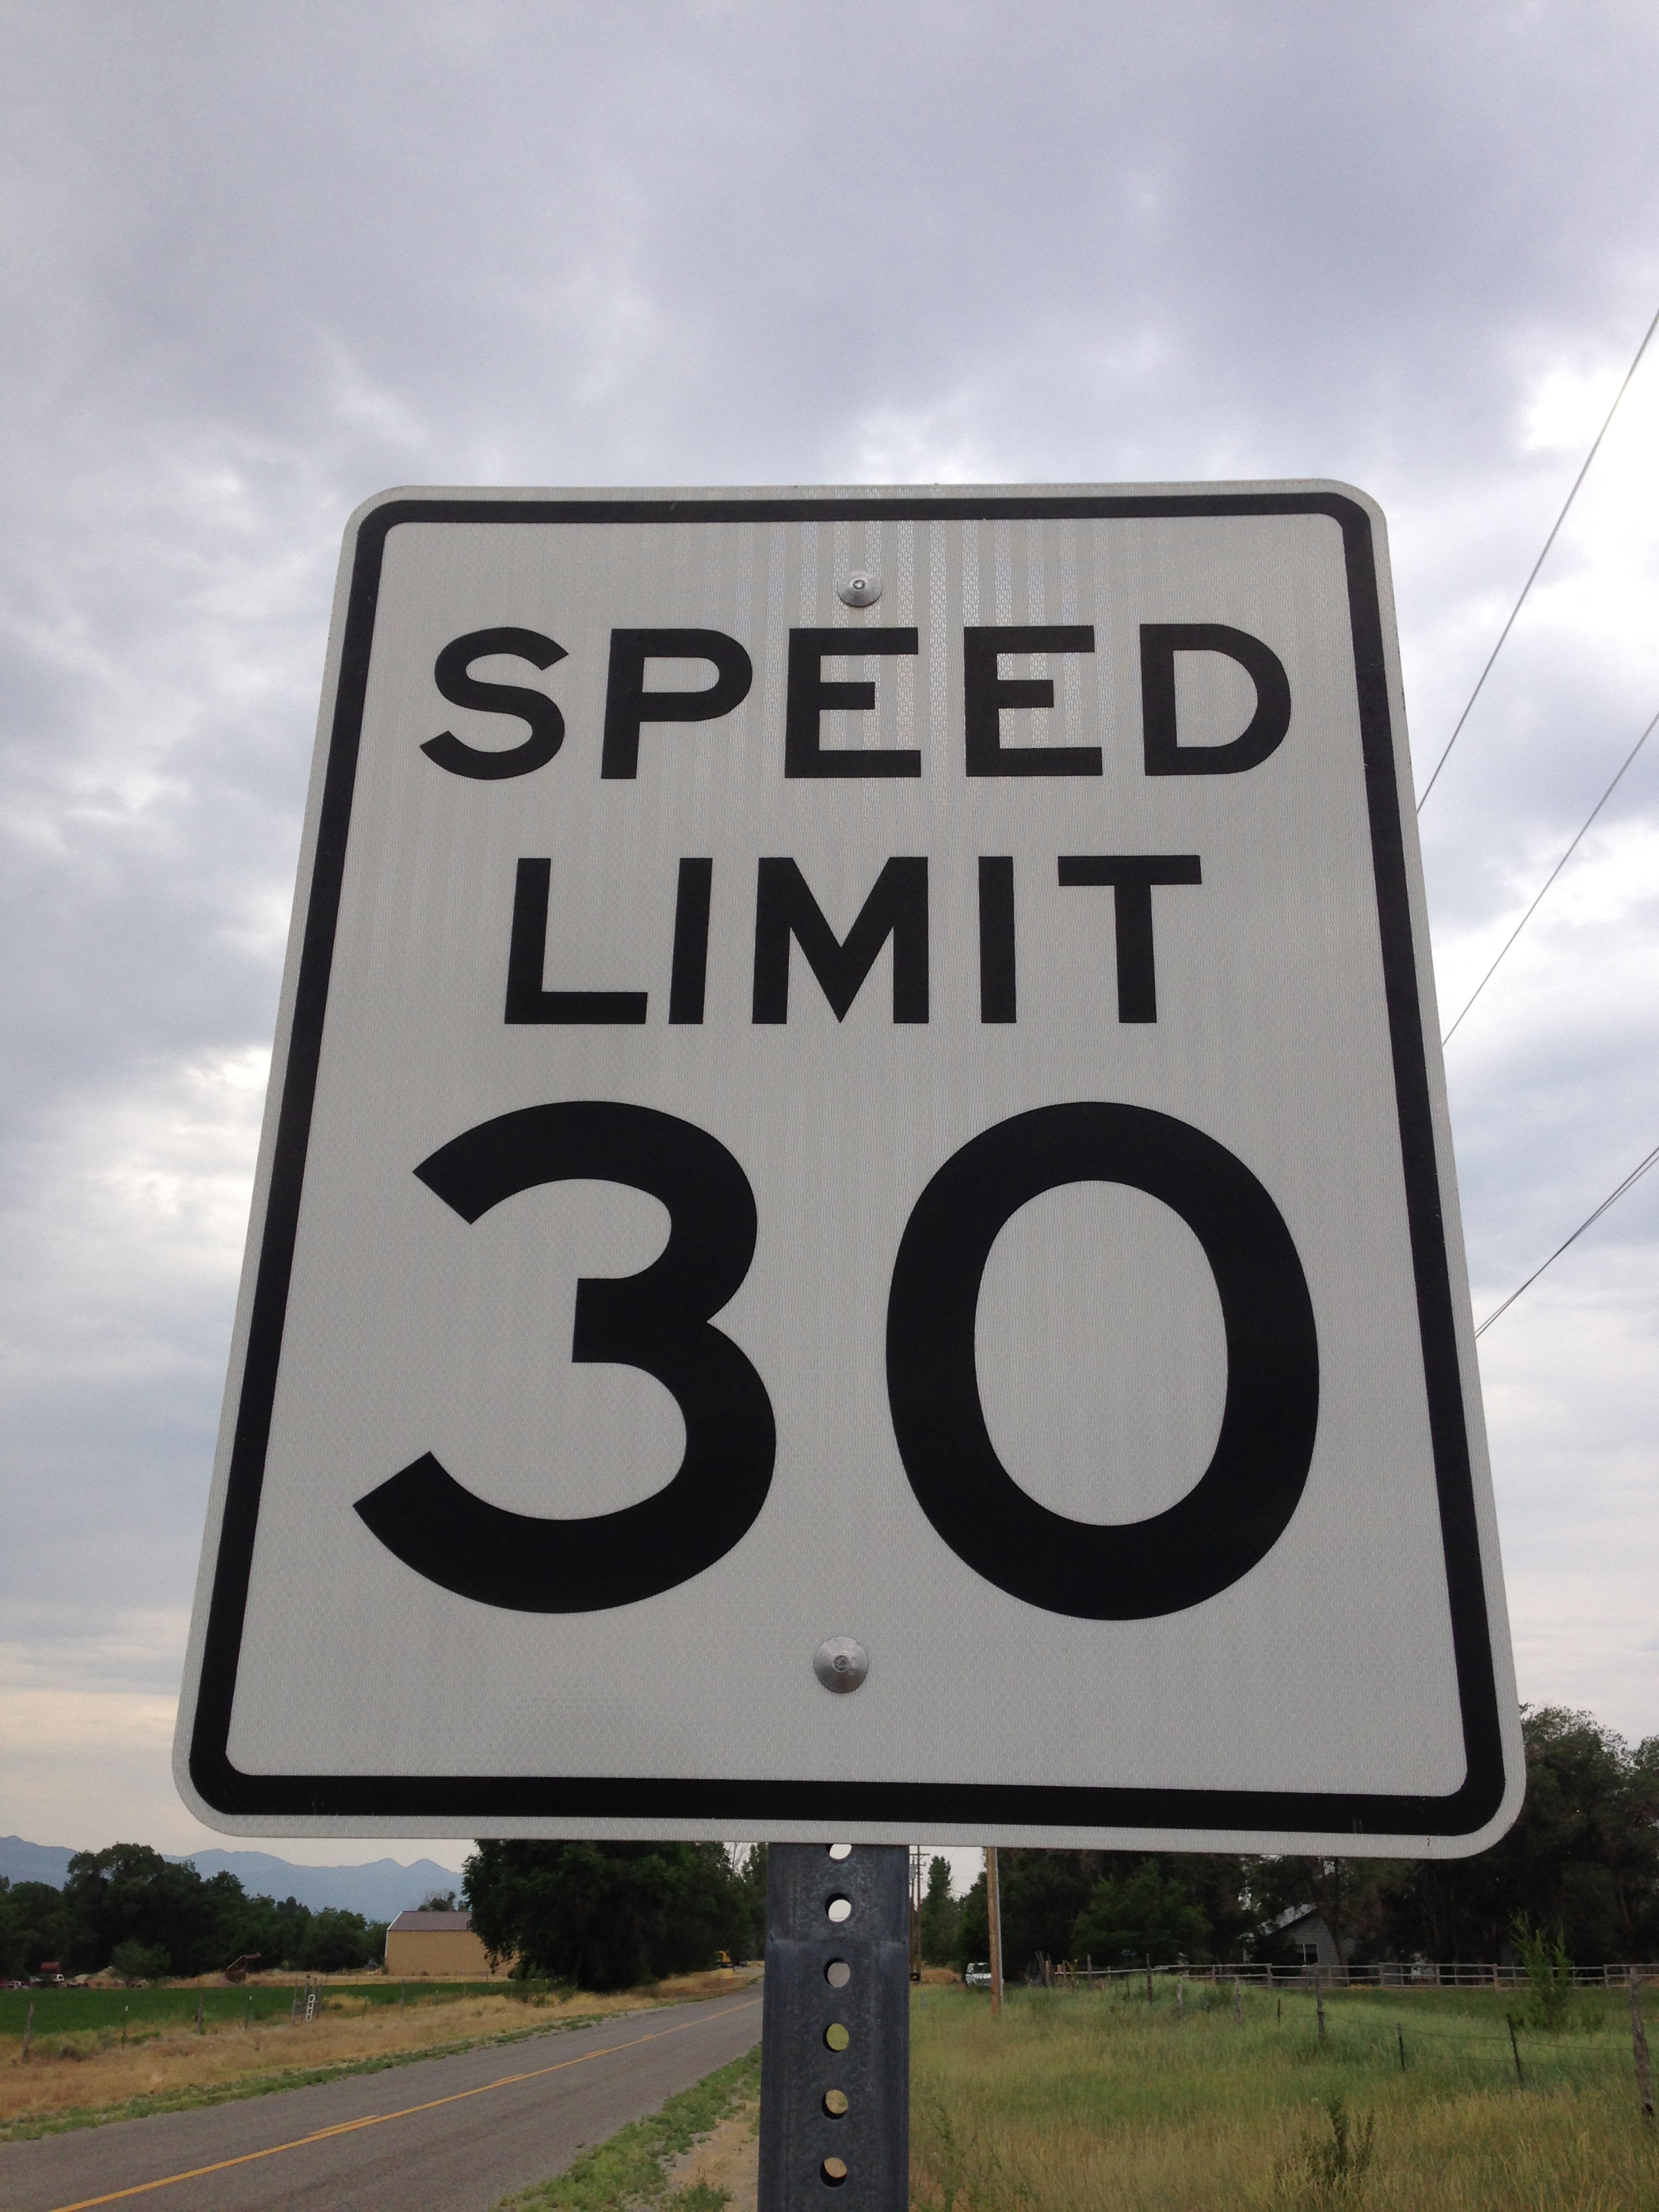 File:2014-07-18 09 42 37 Speed Limit 30 miles per hour sign along ...